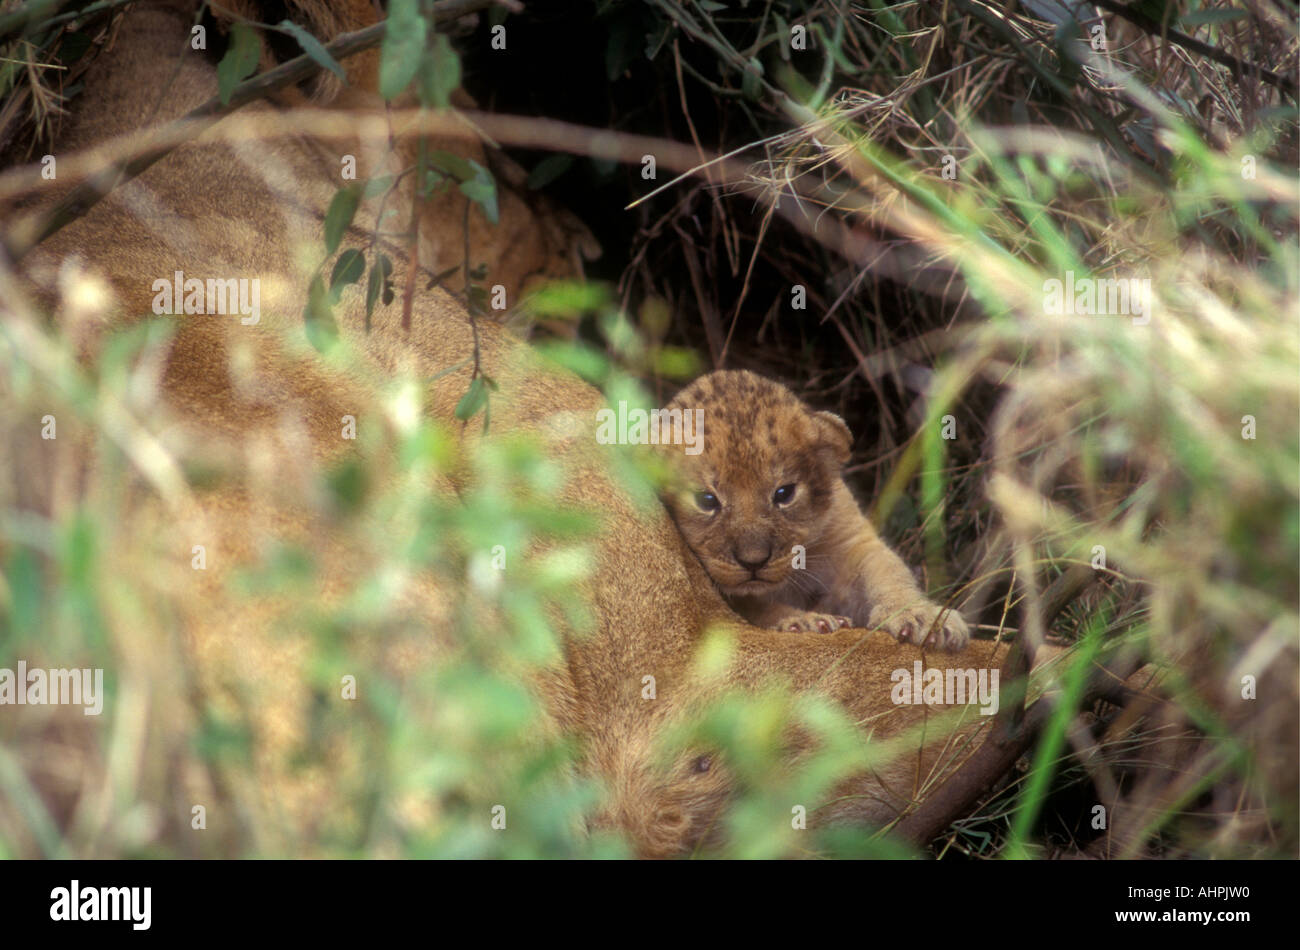 Glimpse of a tiny newly born lion cub only a few hours old Masai Mara National Reserve Kenya East Africa - Stock Image